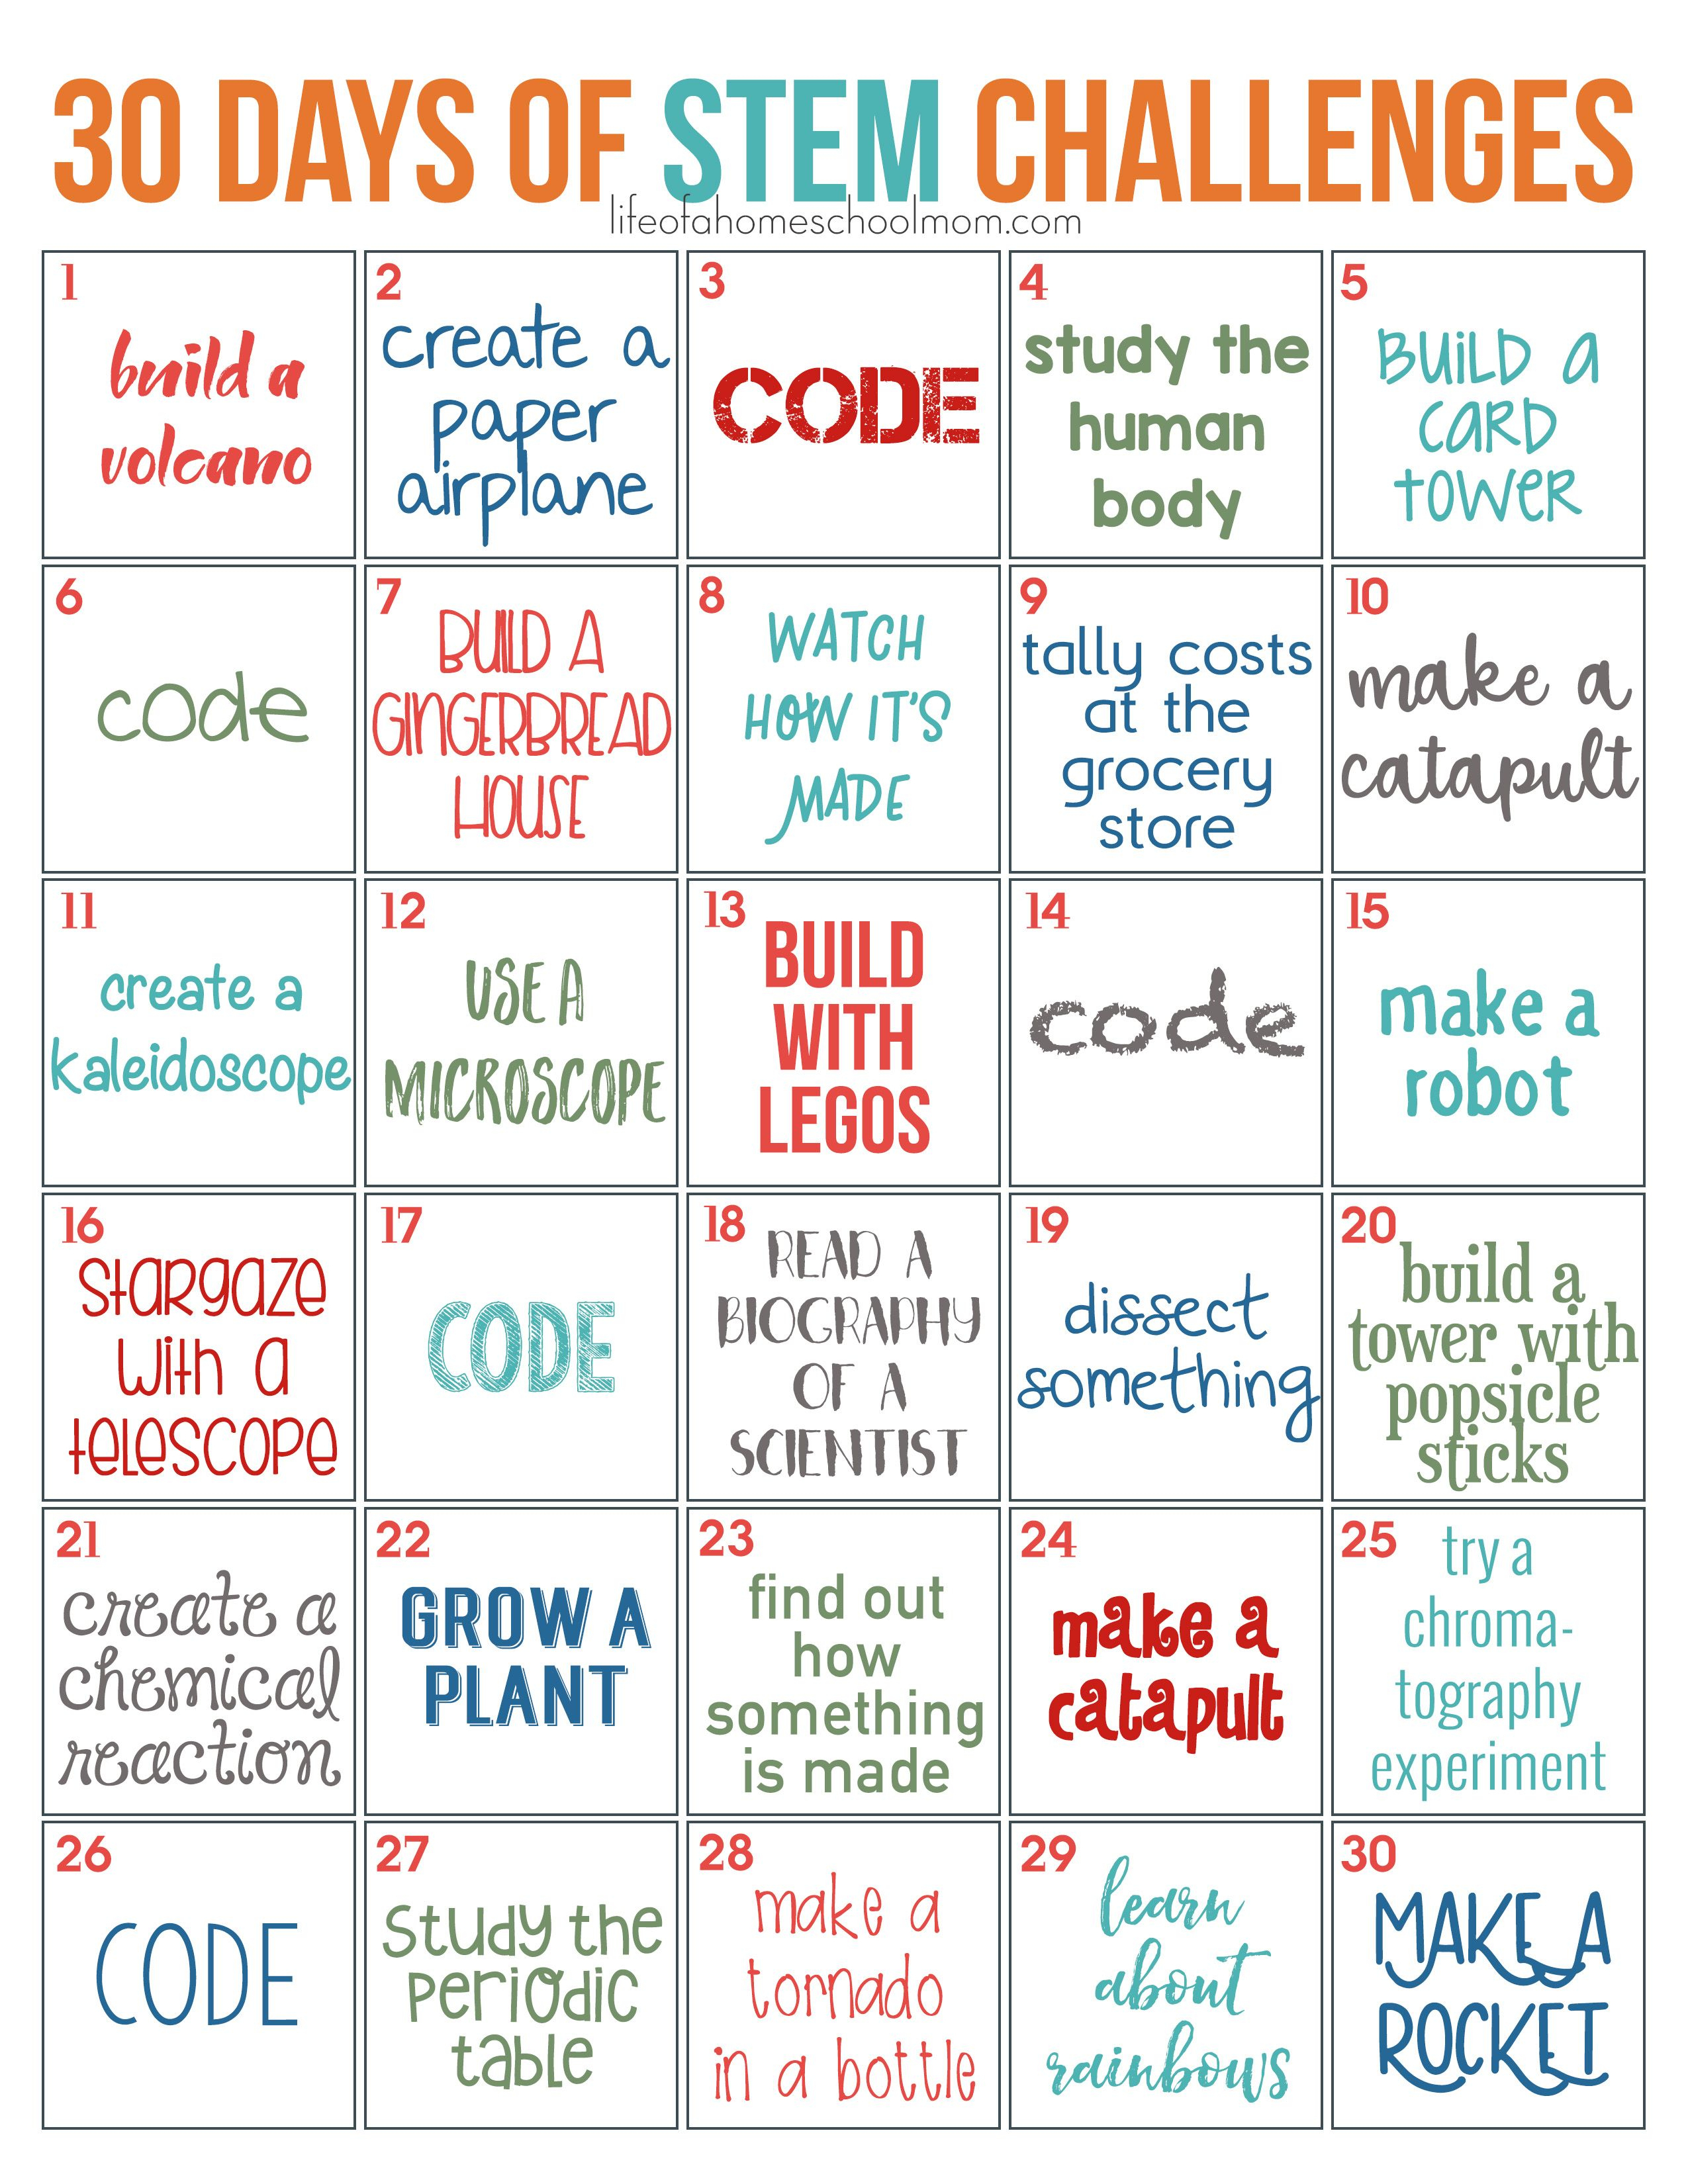 30 Days Of Stem Challenges - Free Printable | Stem Ideas | Stem - Free Printable Stem Activities